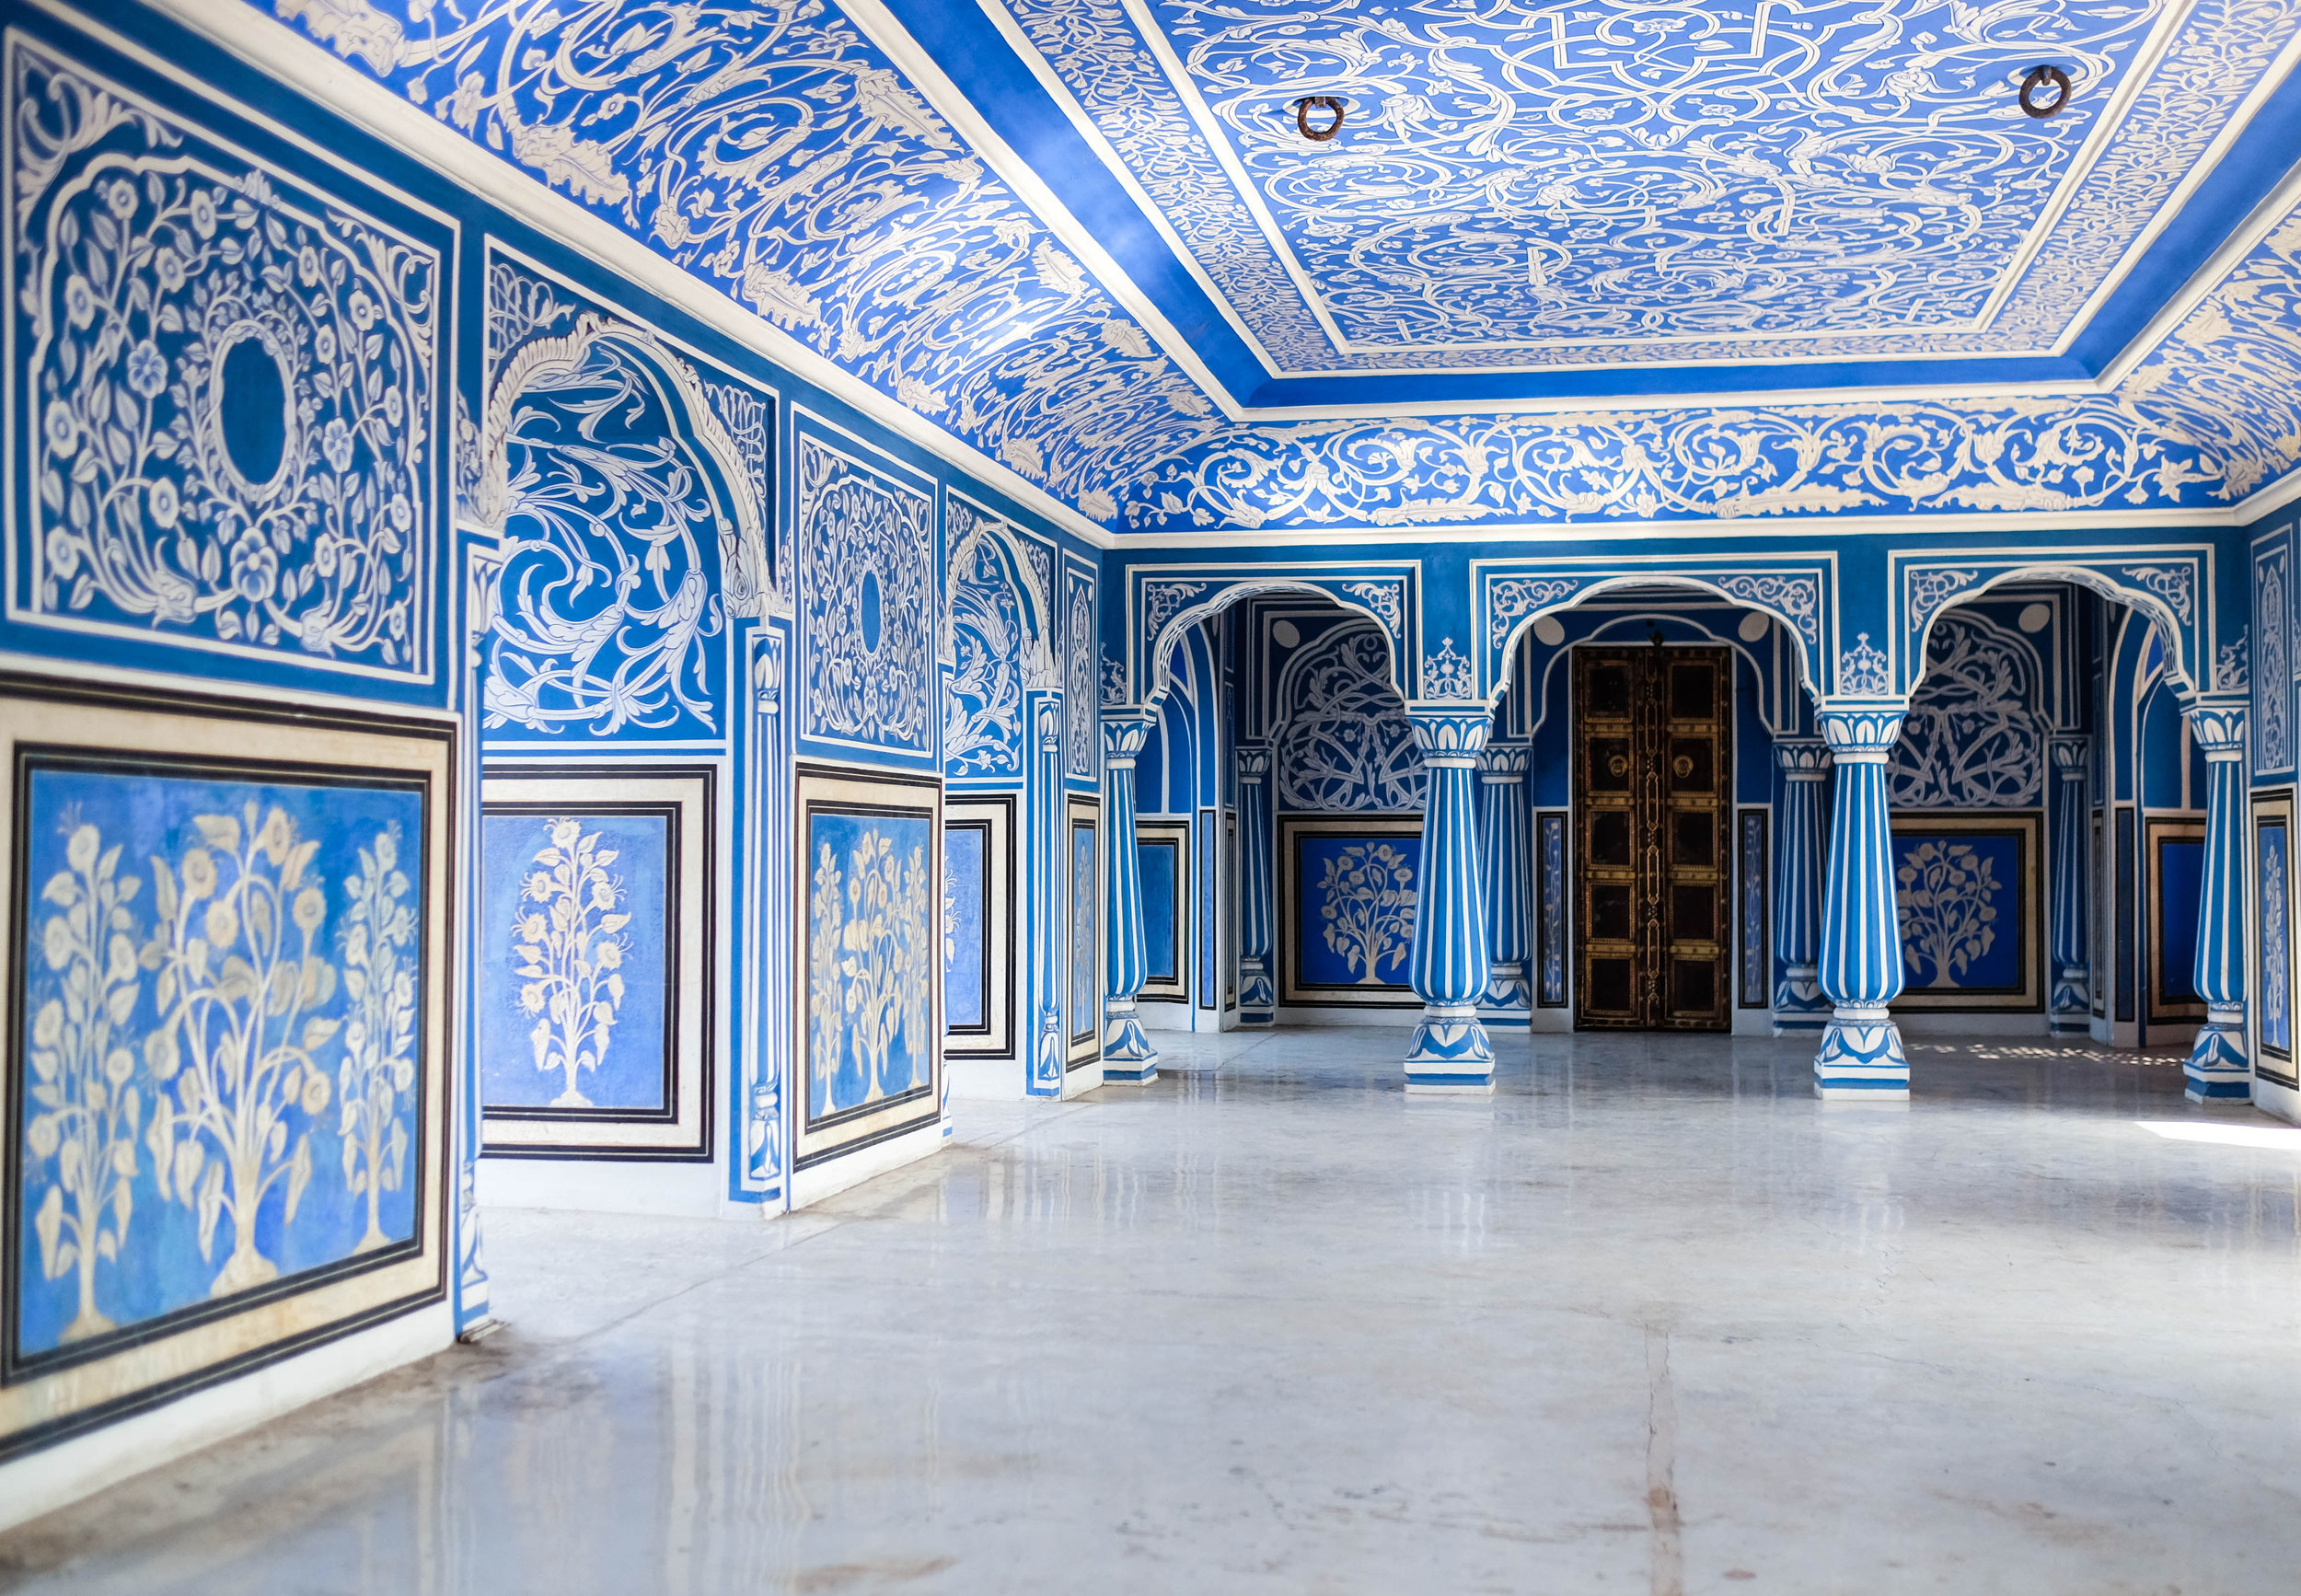 Private candlelit dinner in the Blue Room, Jaipur City Palace.